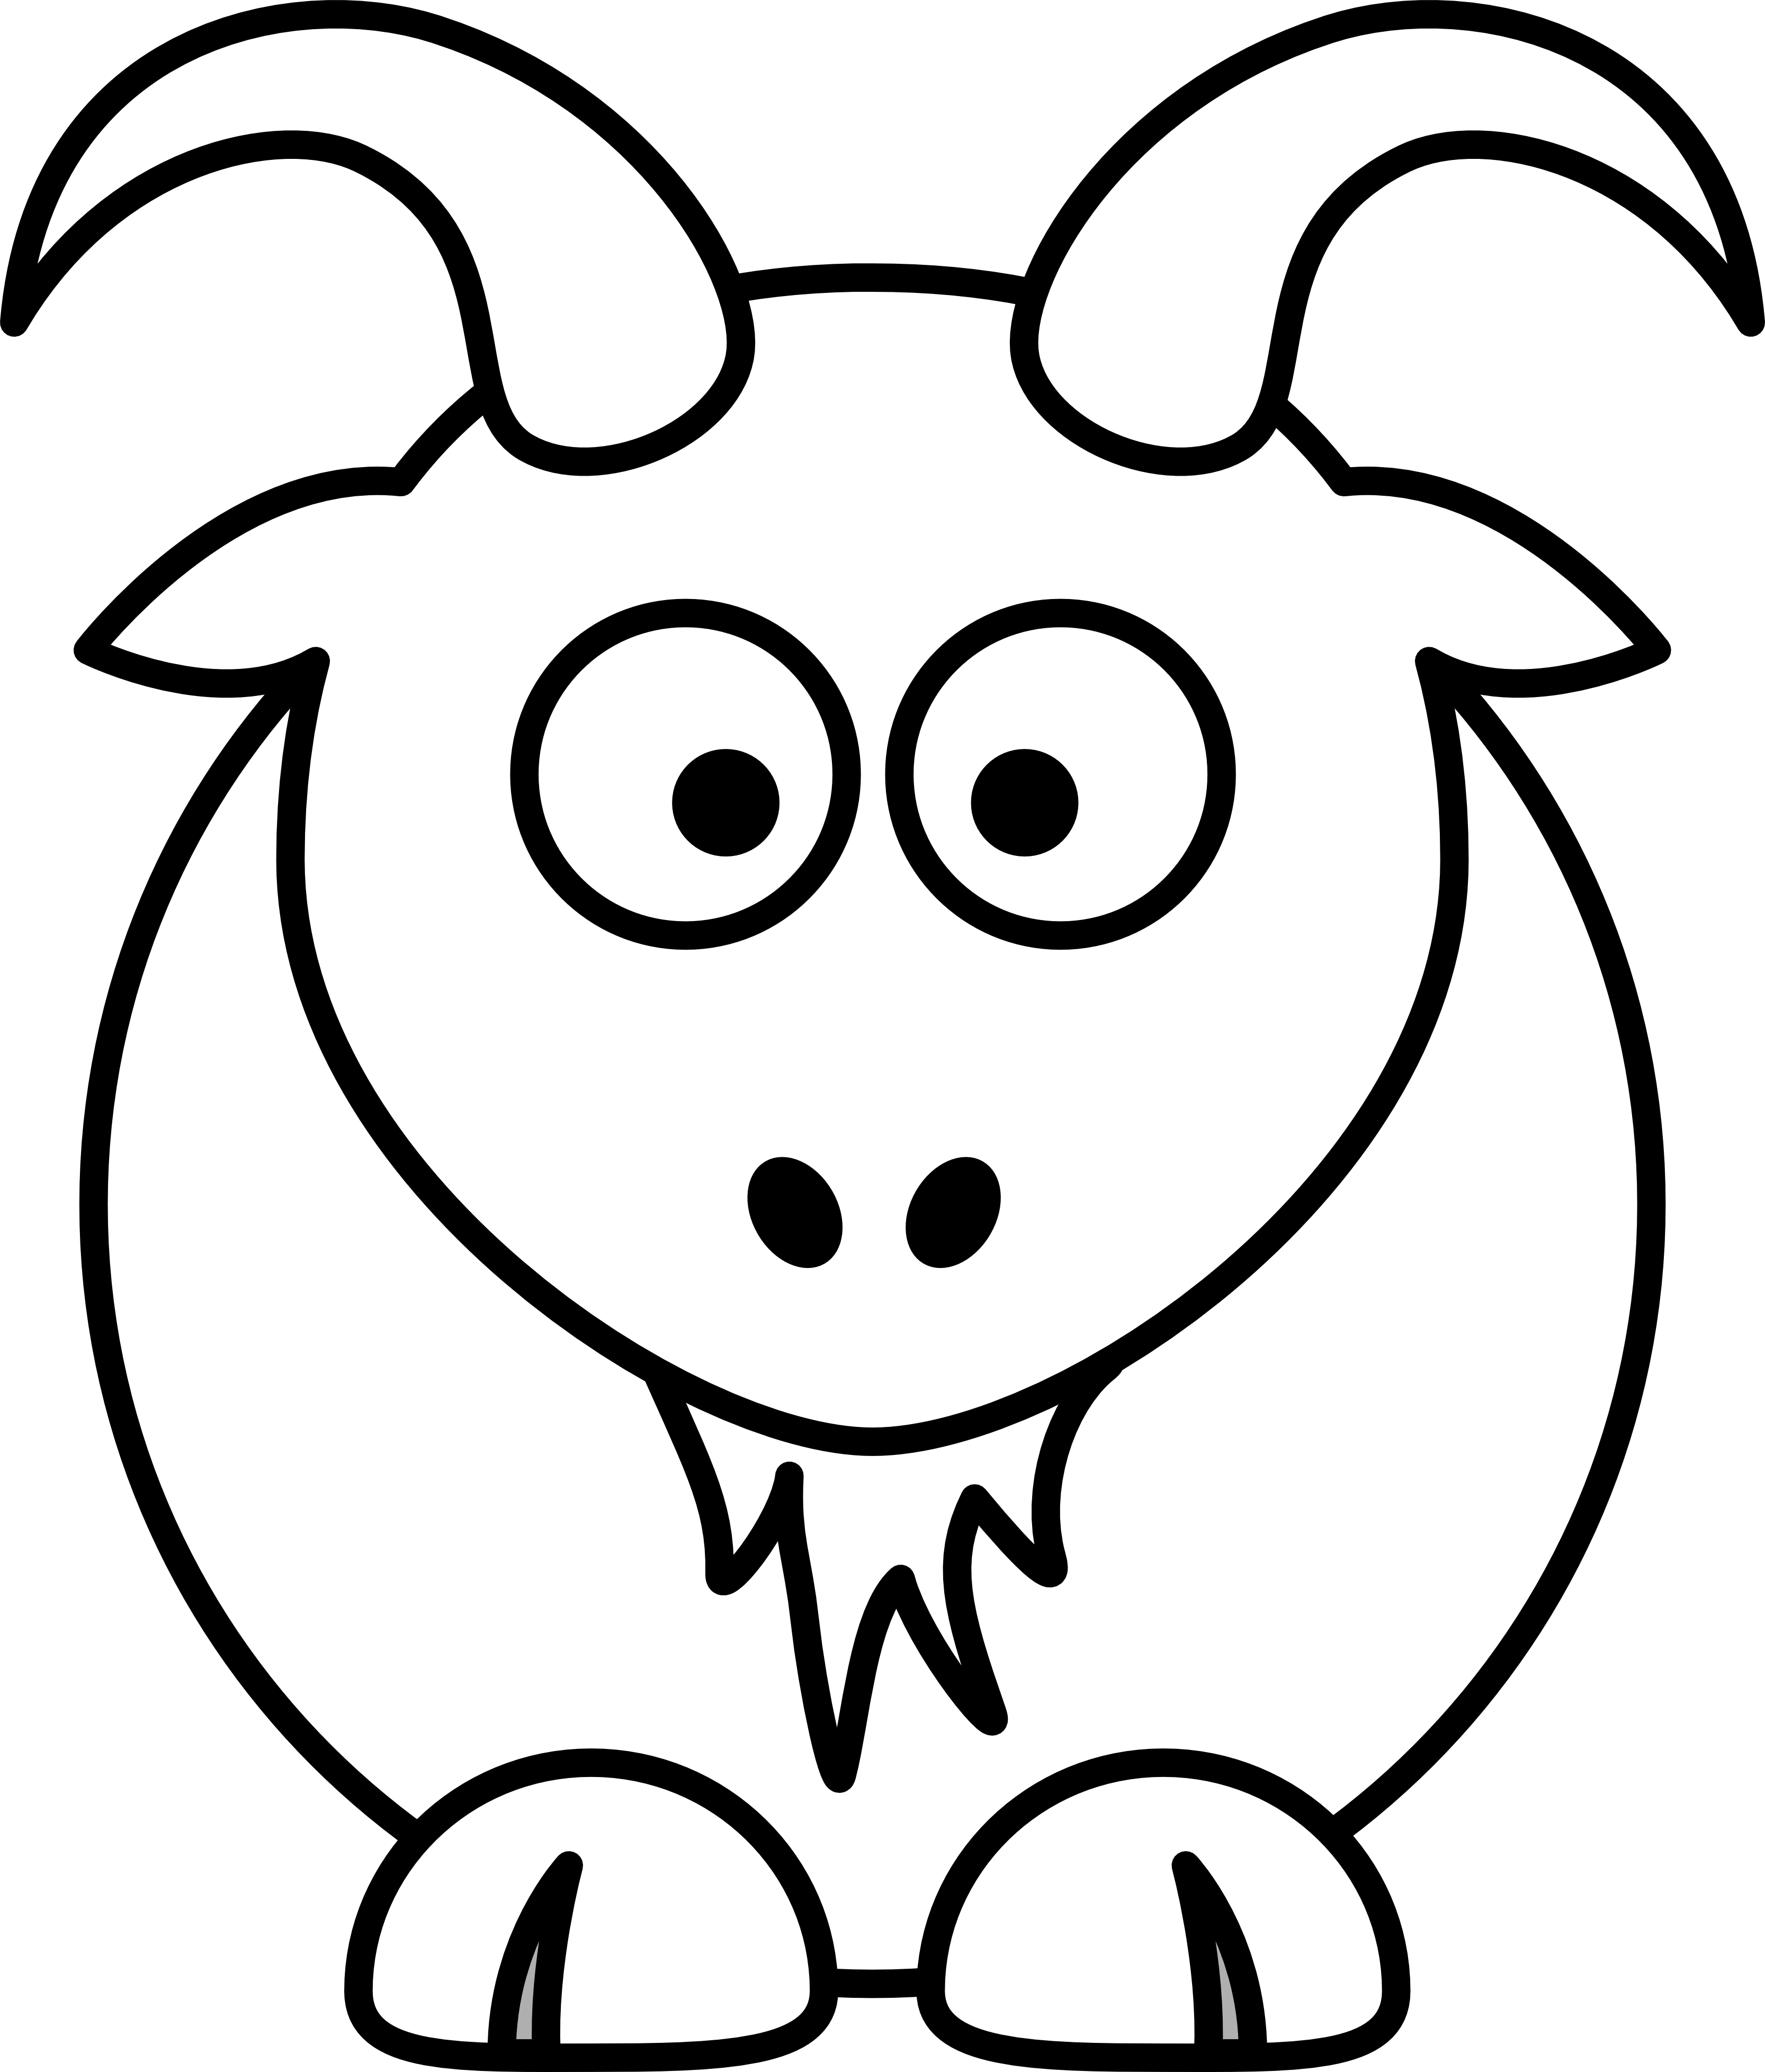 Goat clipart evil.  collection of drawing